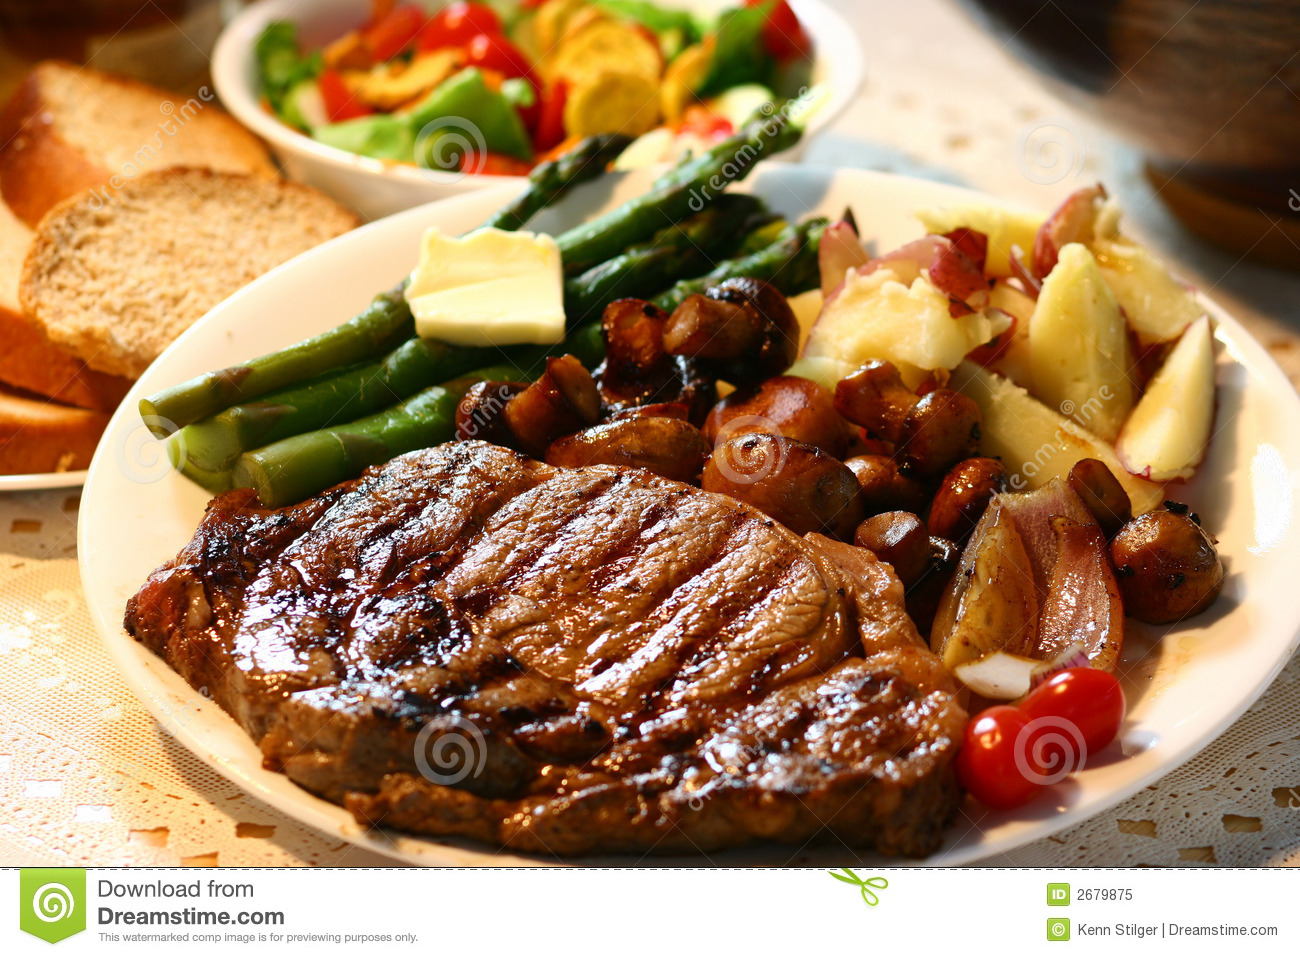 Home cooking royalty free stock photo image 2679875 - Home cooking ...